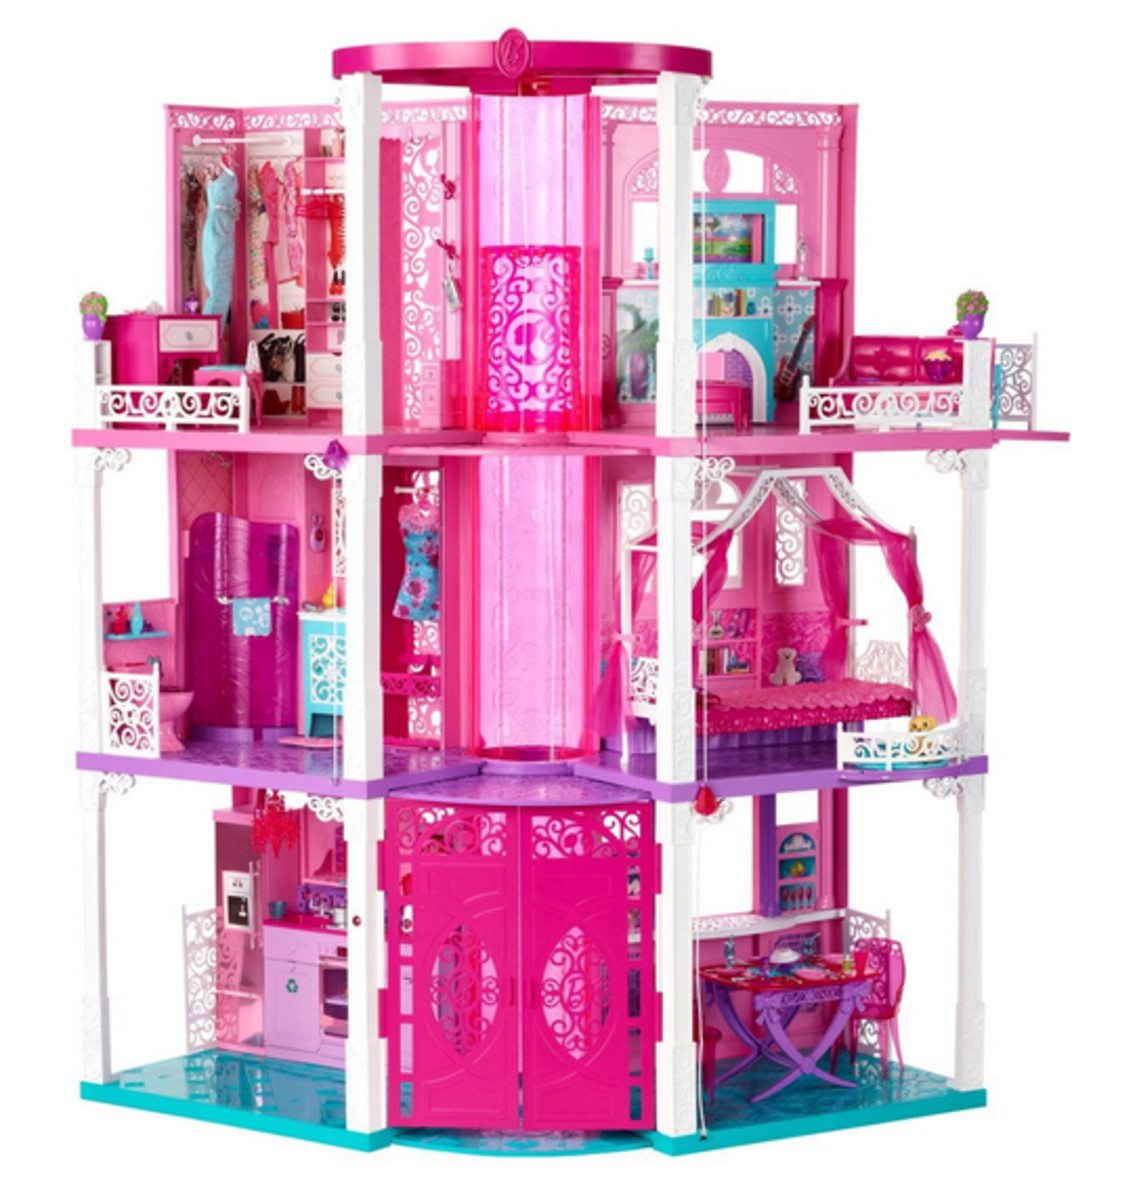 Barbie Fashionista Doll House Full View all 3 floors